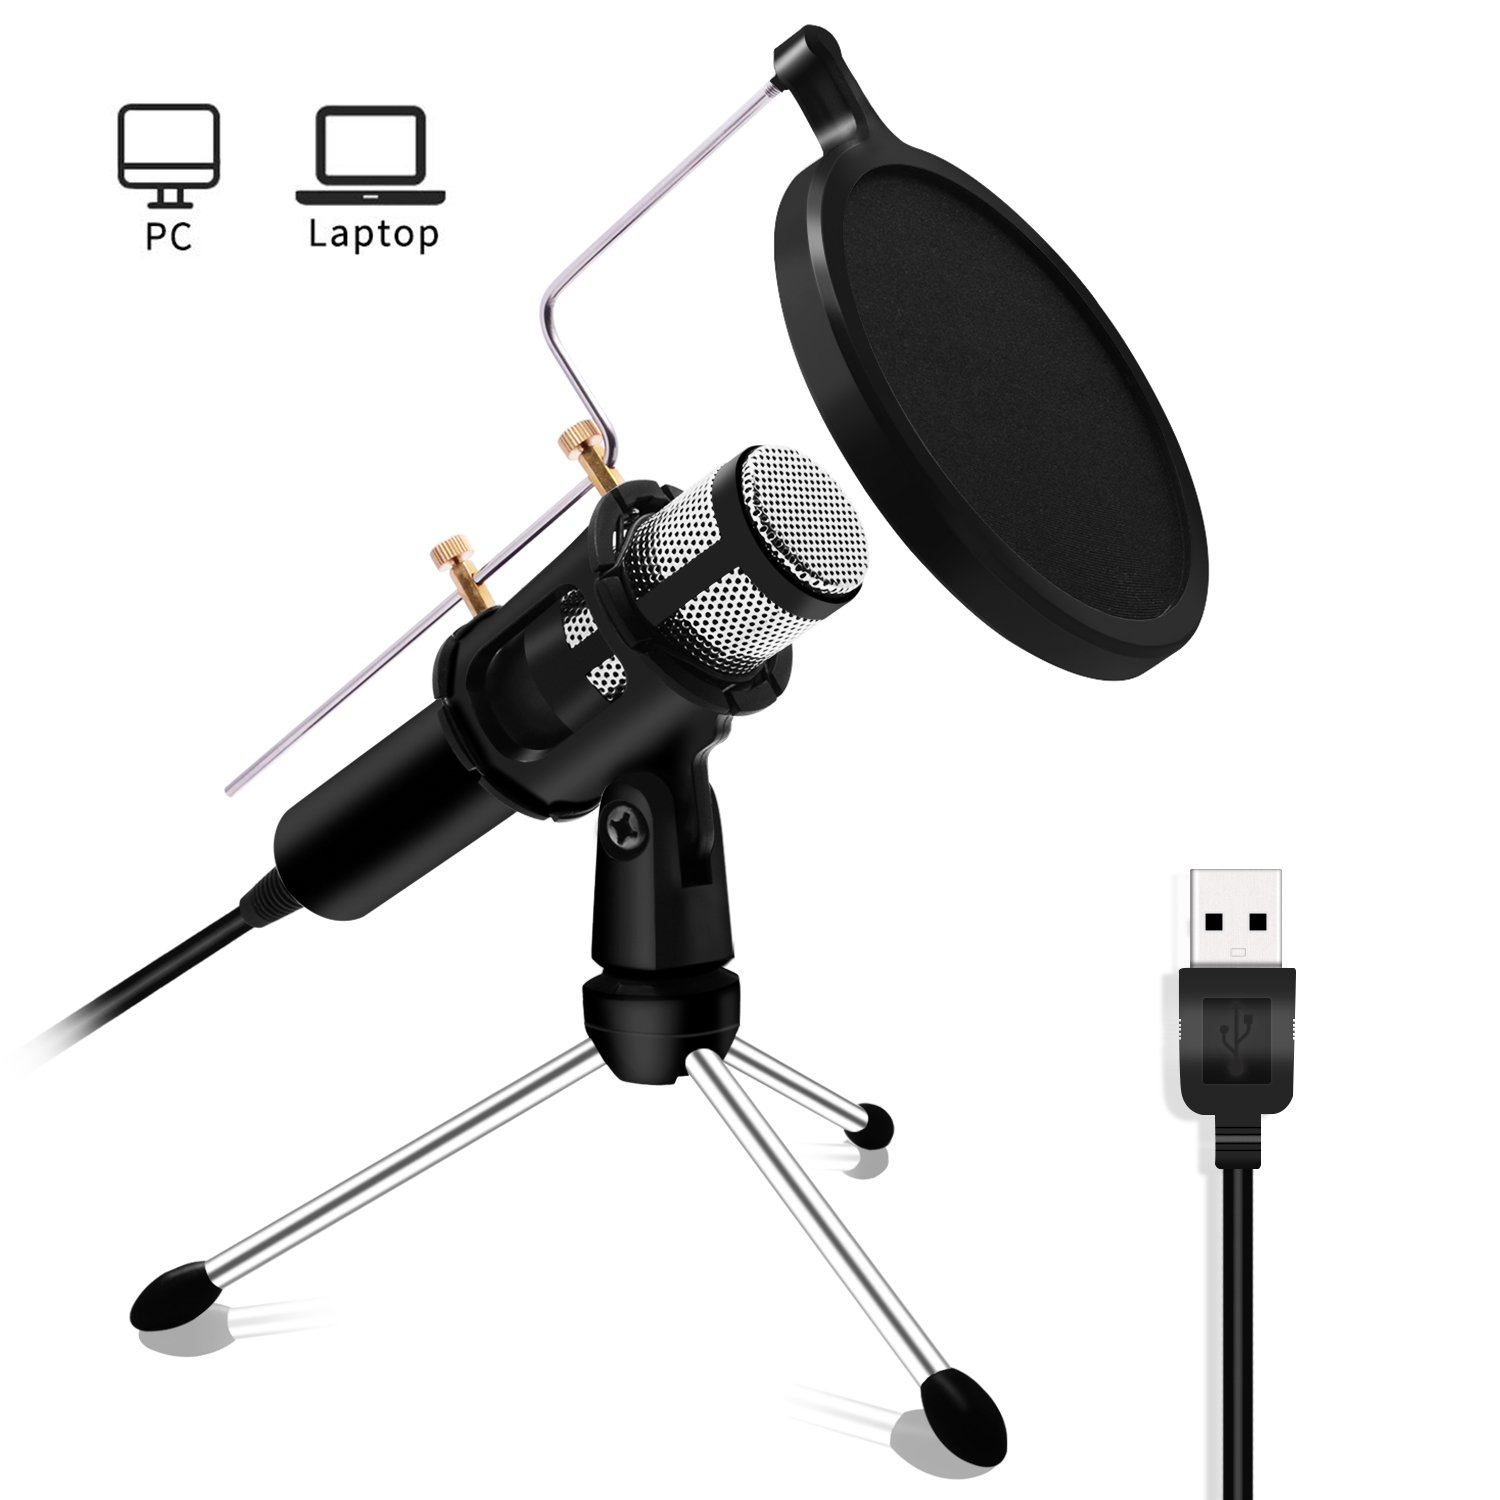 Lefon Professional Microphone USB Microphone Plug & Play Home Studio USB Condenser Microphone Broadcasting & Recording Microphone Set, for YouTube, Facebook, Podcasting, Games(Windows/Mac)